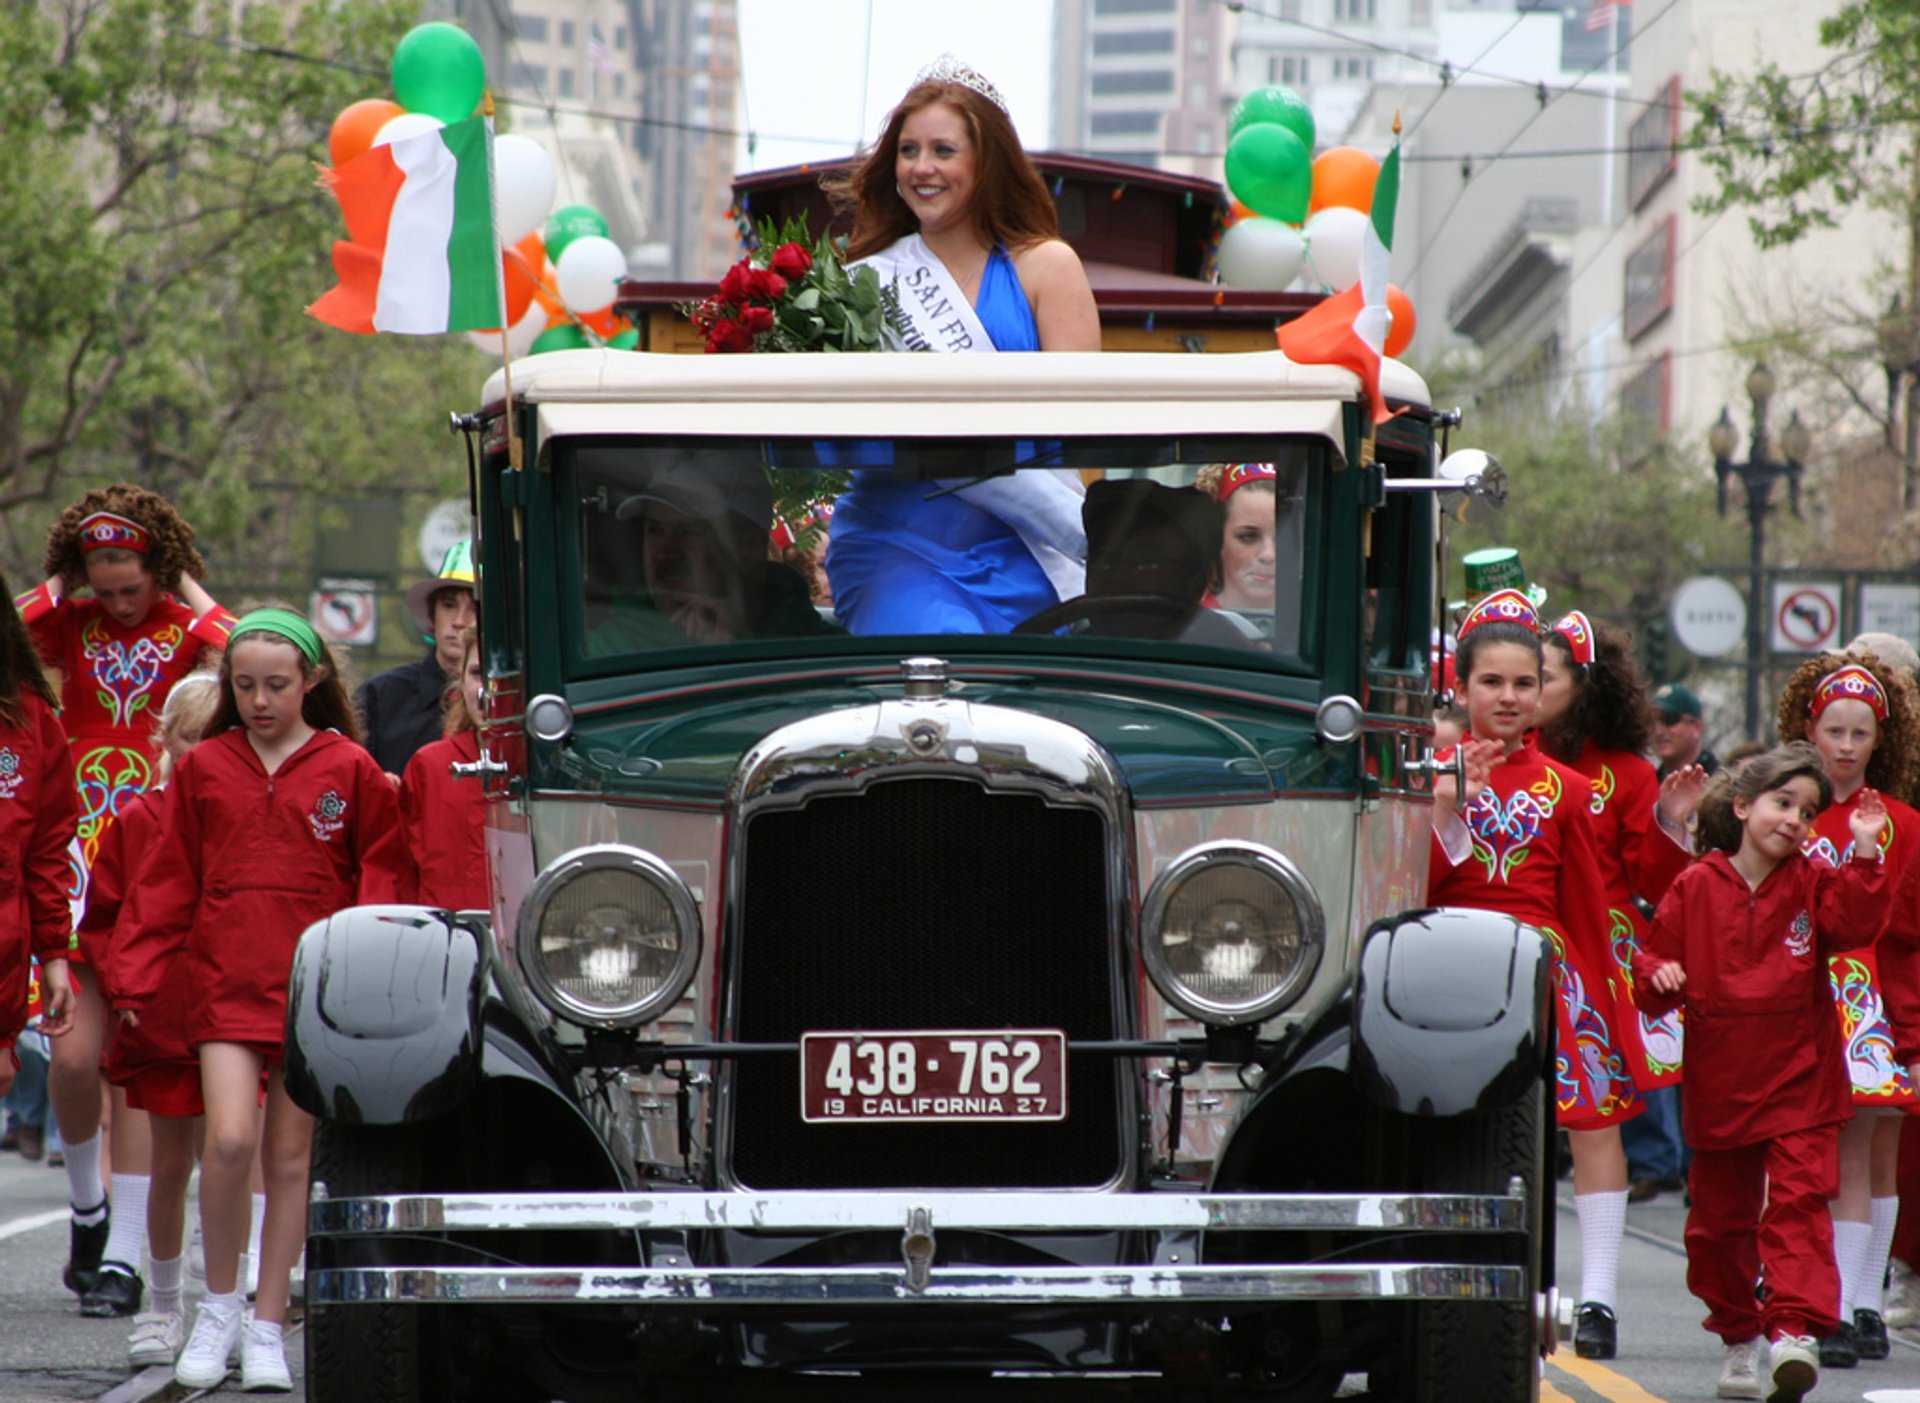 St. Patrick's Day Parade in San Francisco - Best Season 2019